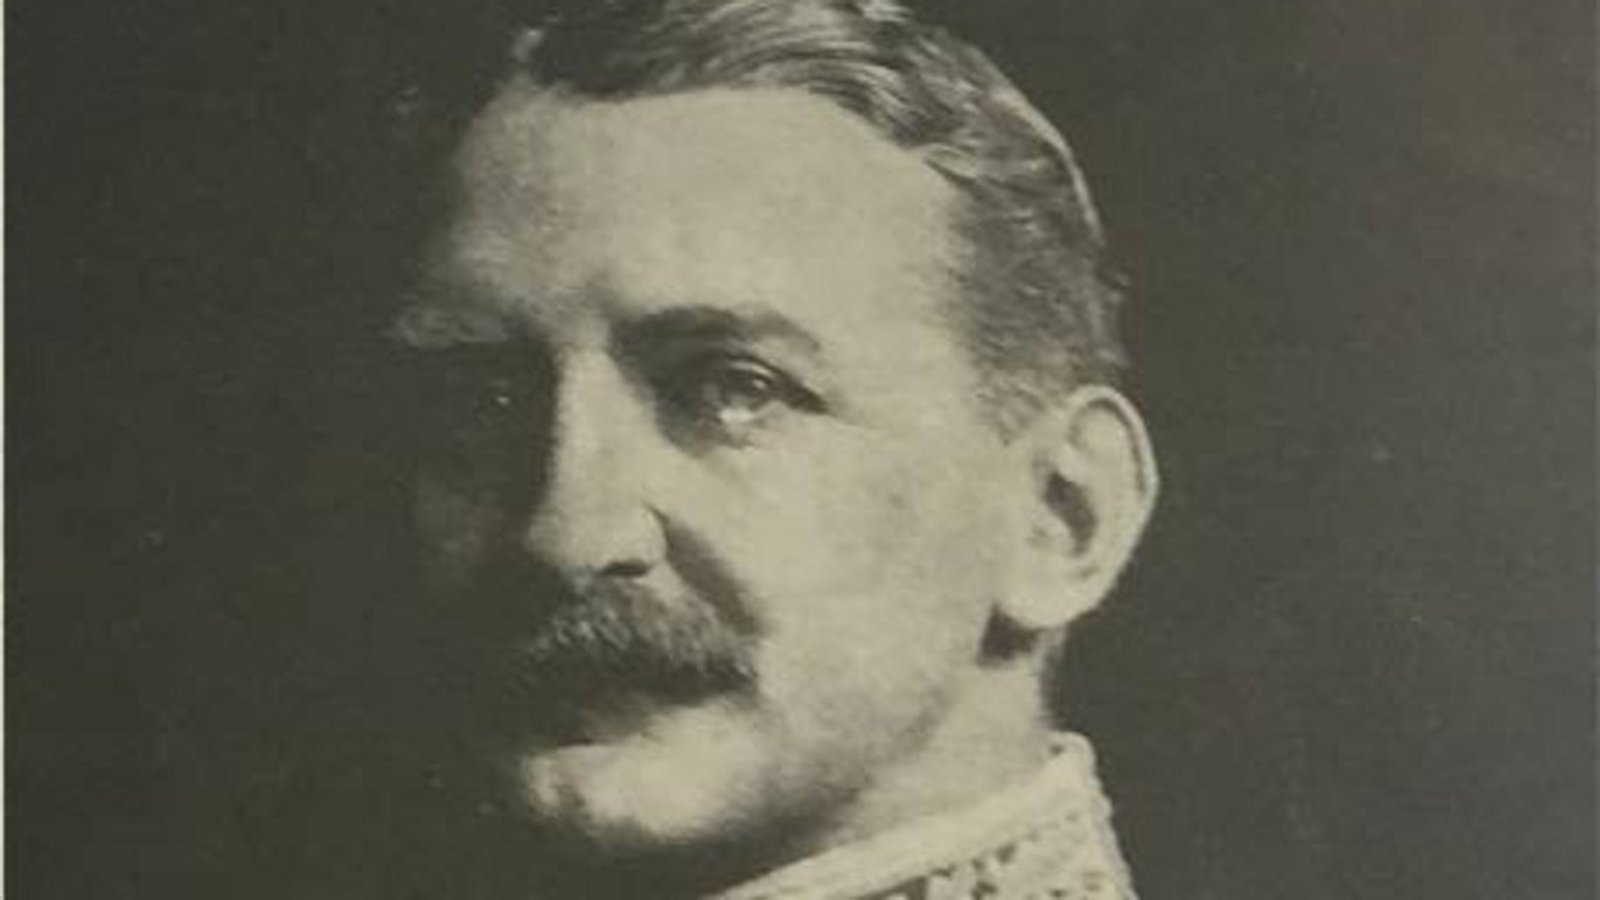 Image - Sir John Maxwell. The GAA sought to meet with him after 1916 to secure GAA exclusion from taxation and to arrange for the provision of special trains to GAA matches.